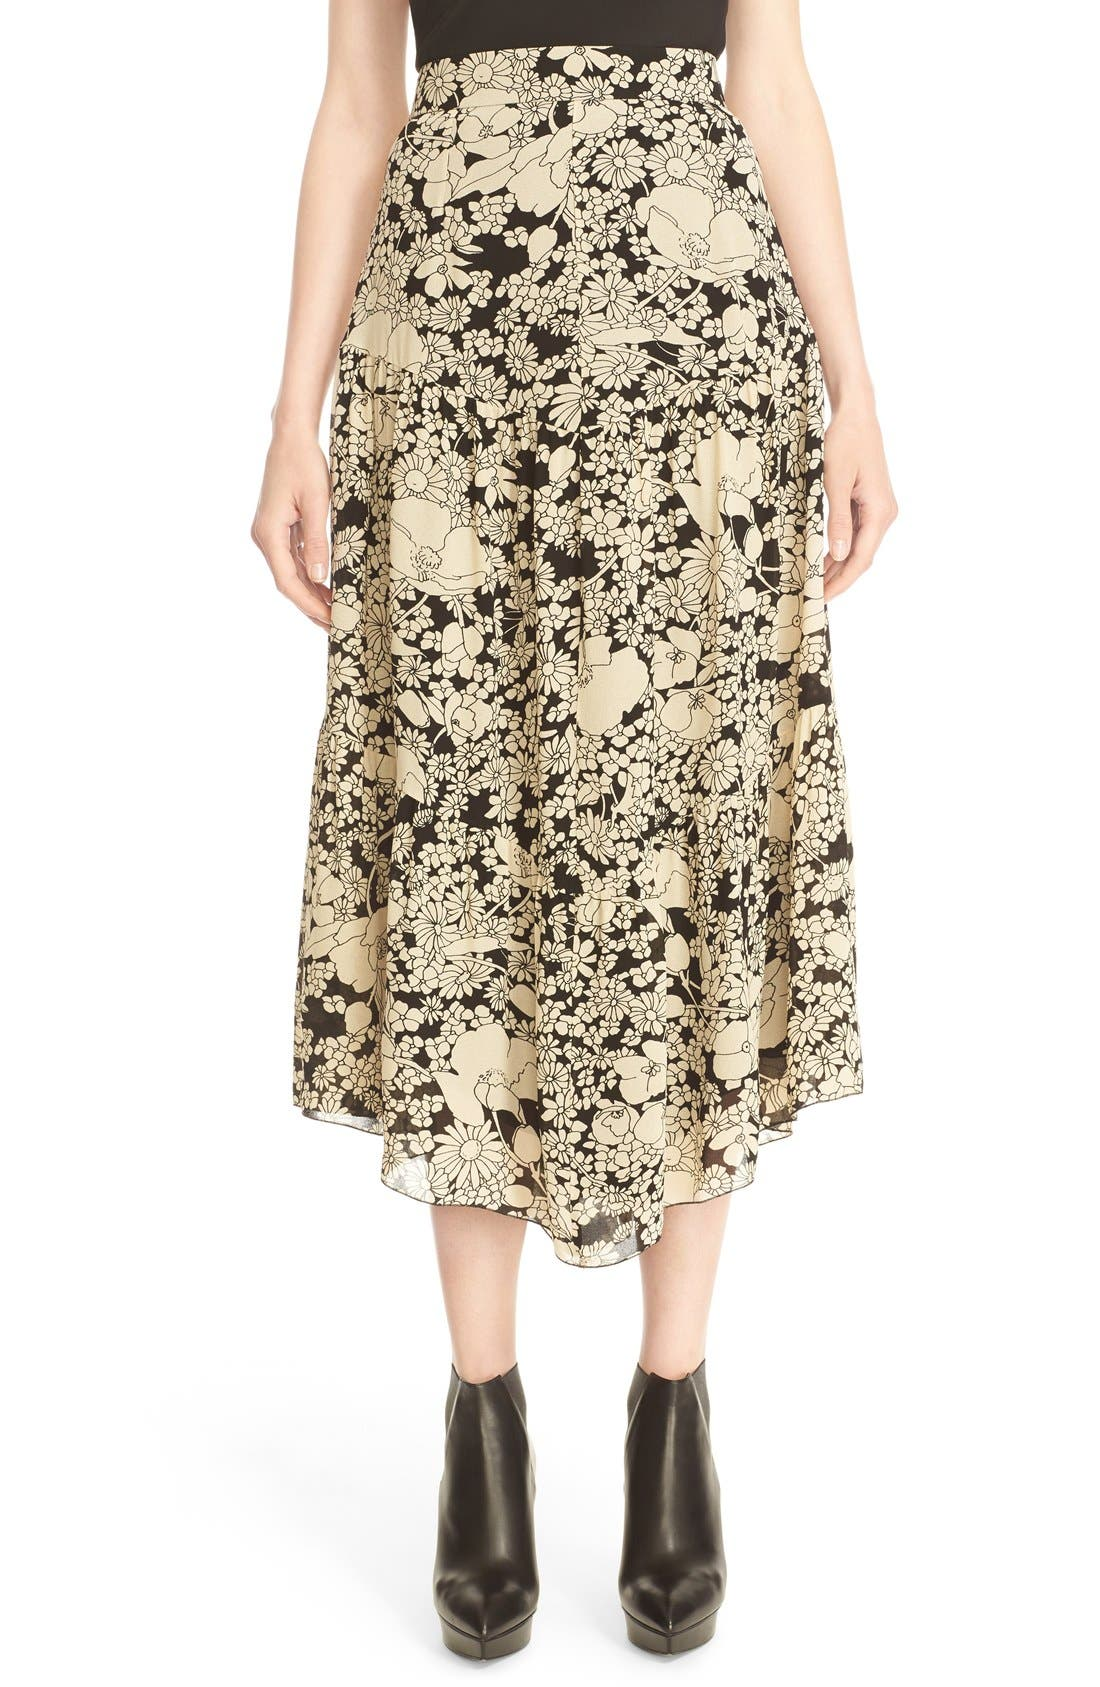 Alternate Image 1 Selected - Saint Laurent Floral Print Crepe Midi Skirt